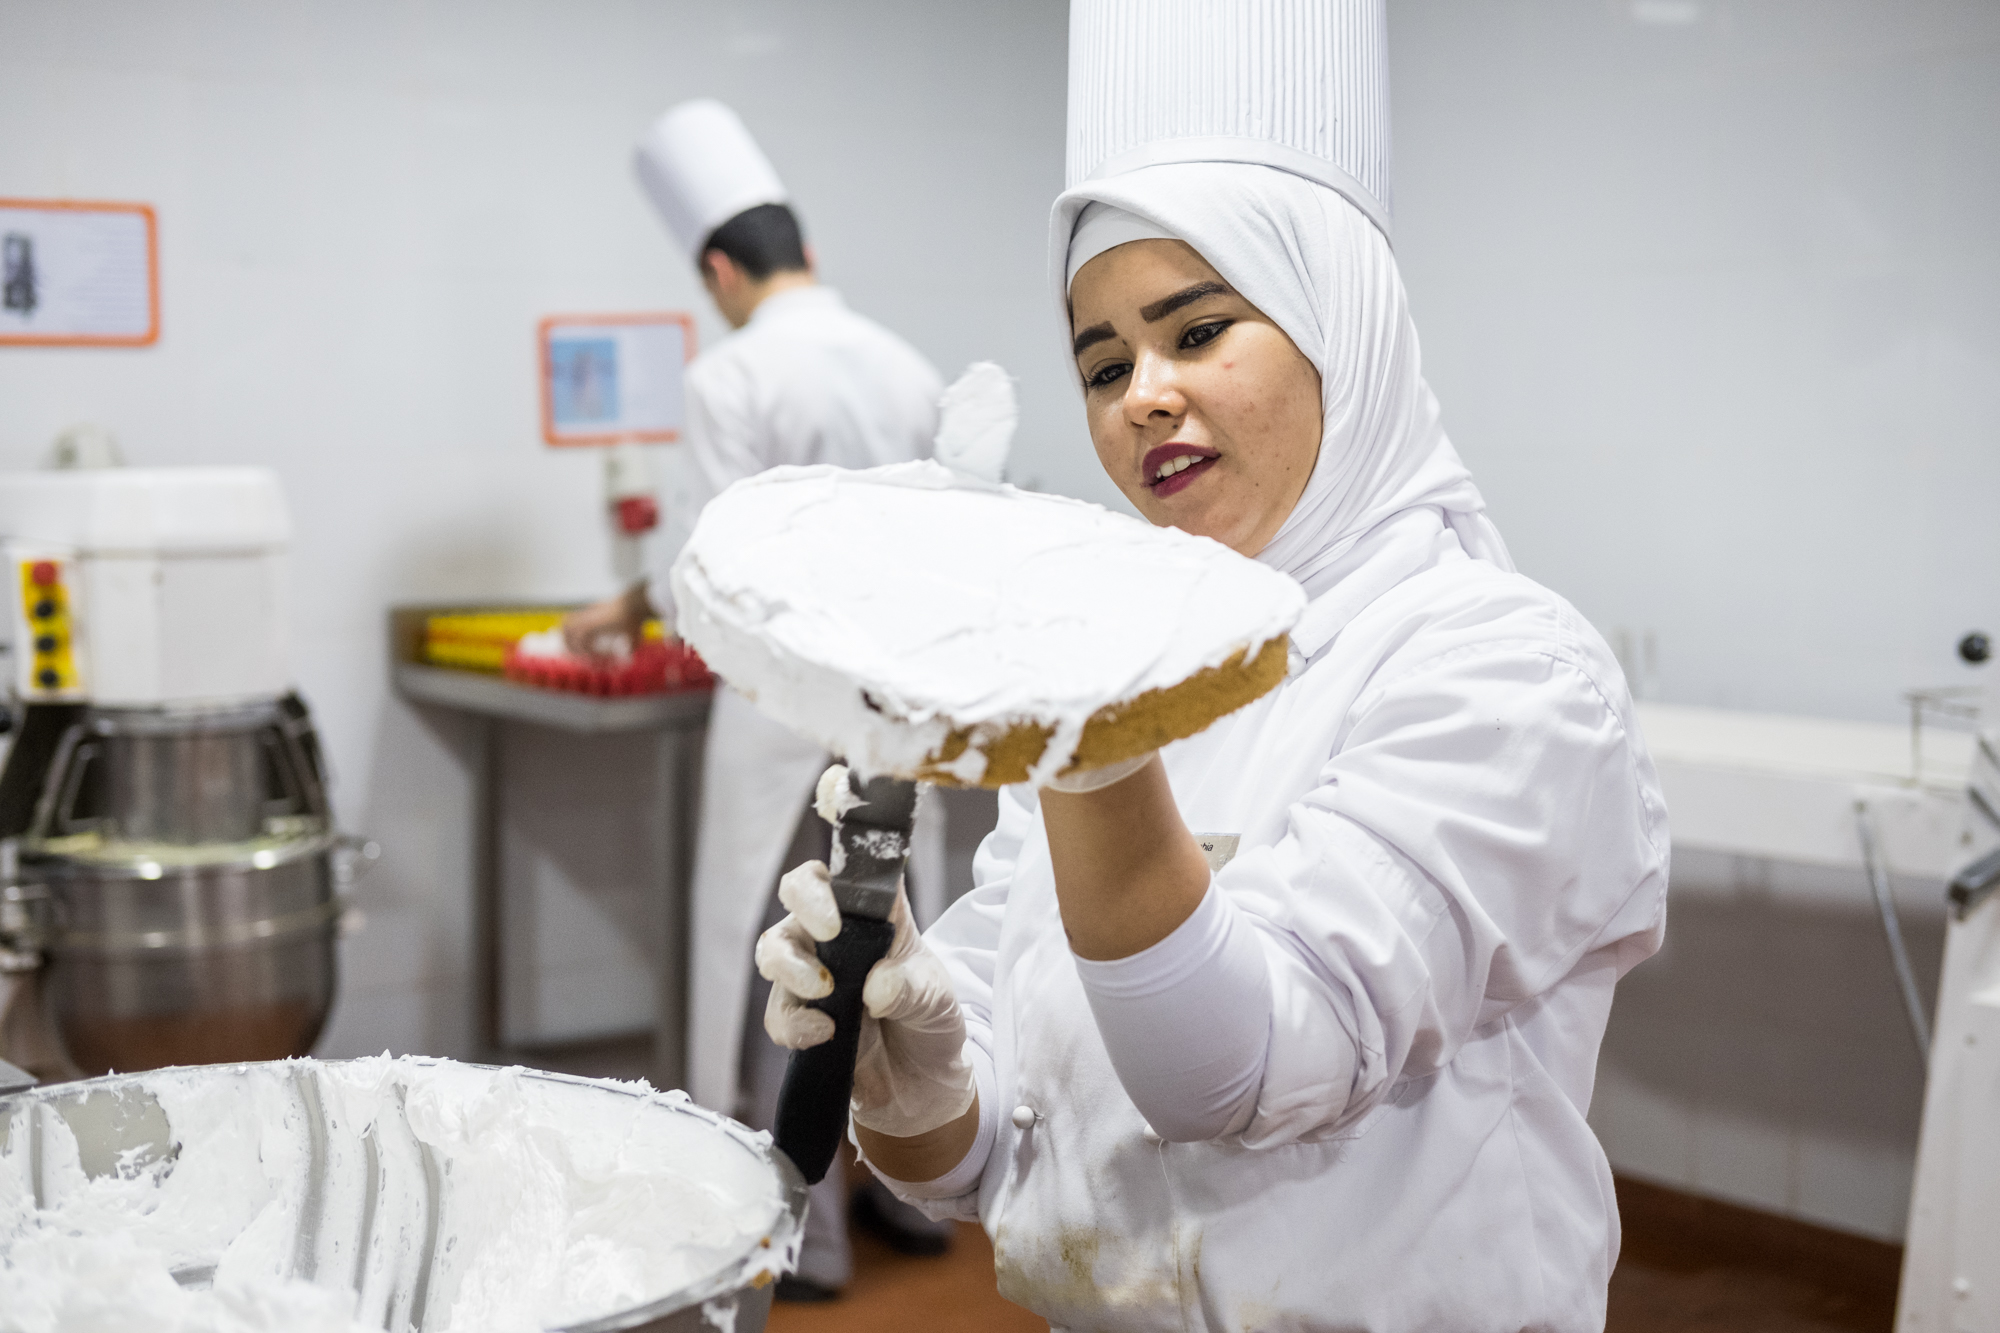 Amira, a trainee in the Kitchen/Pastry Section, prepares a fresh cake and frosting.